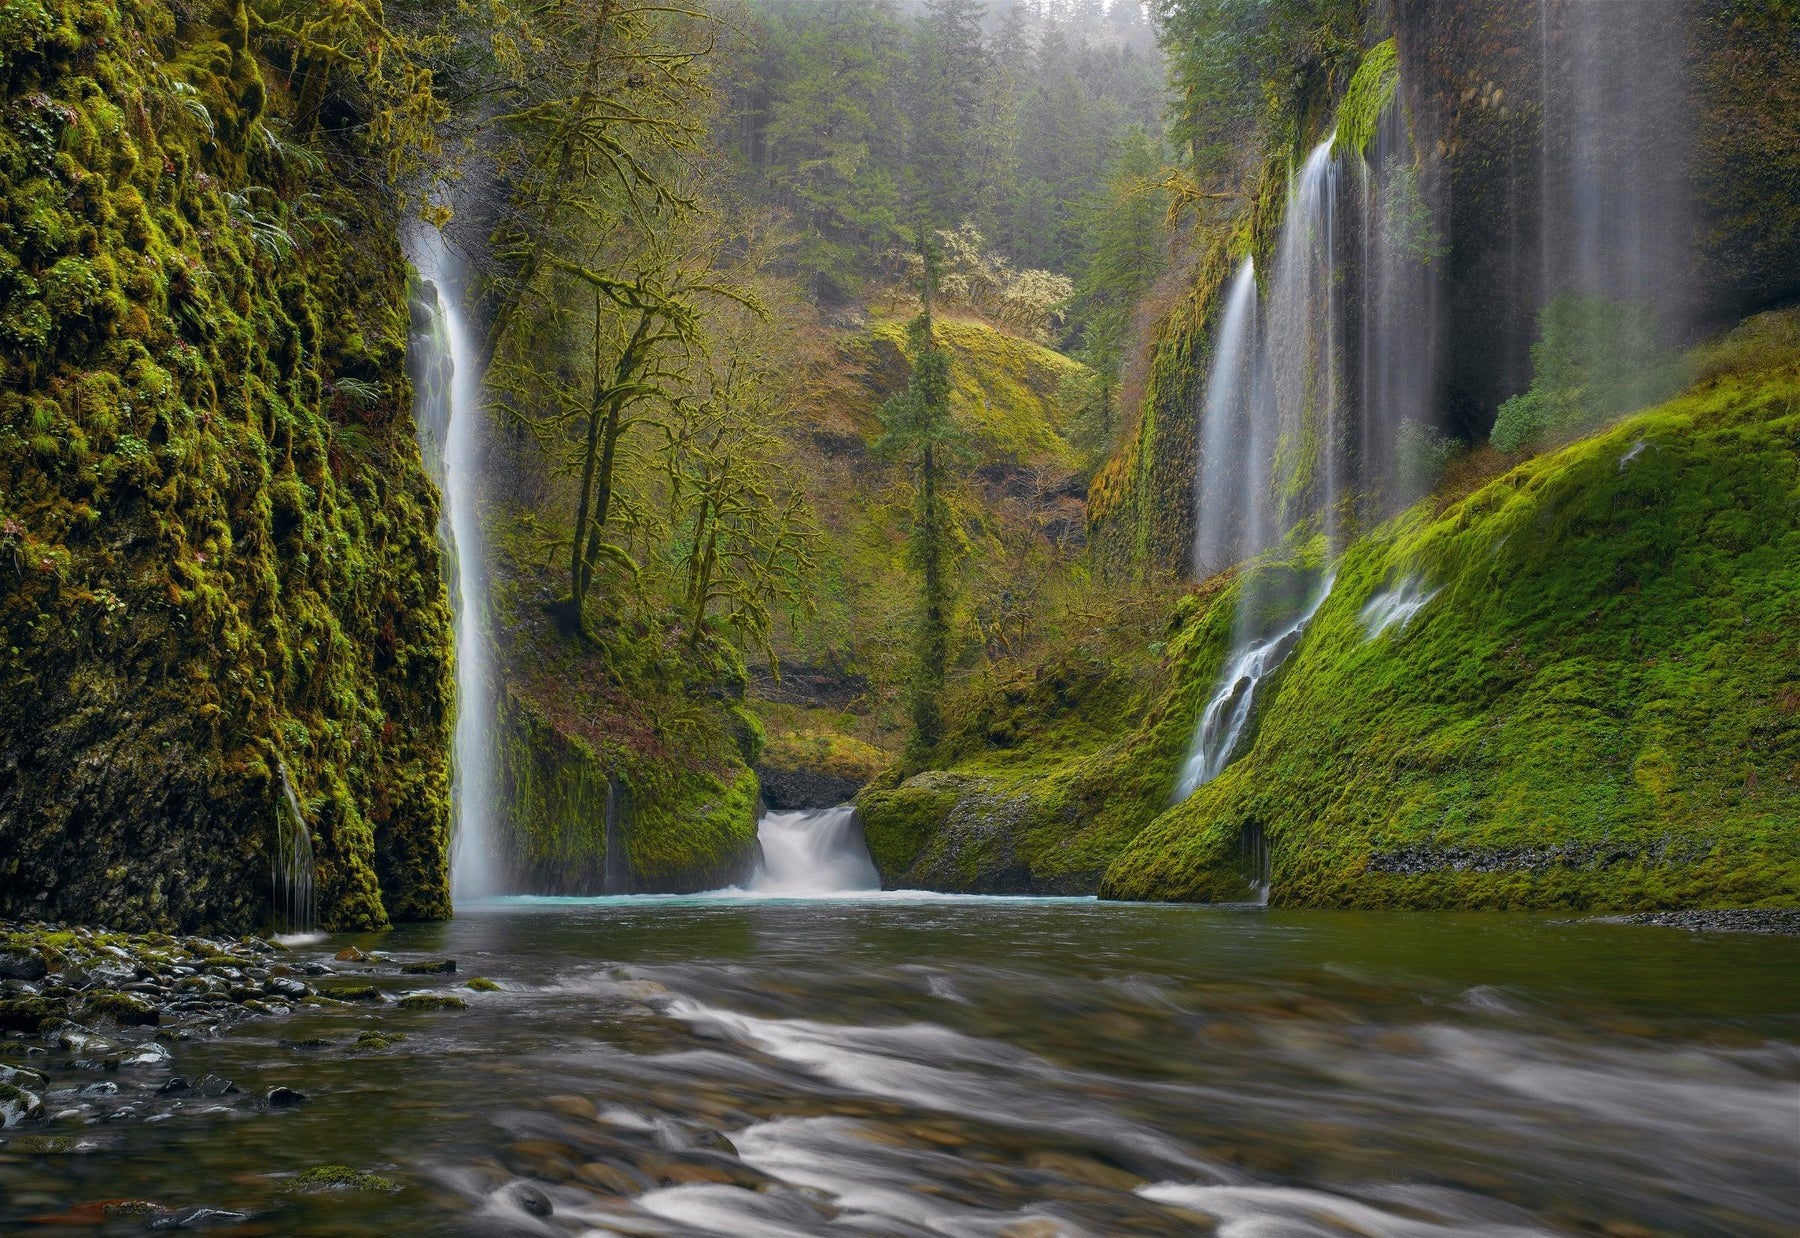 Waterfalls flowing down the moss covered Colombia River Gorge into the rushing waters of a river in Oregon